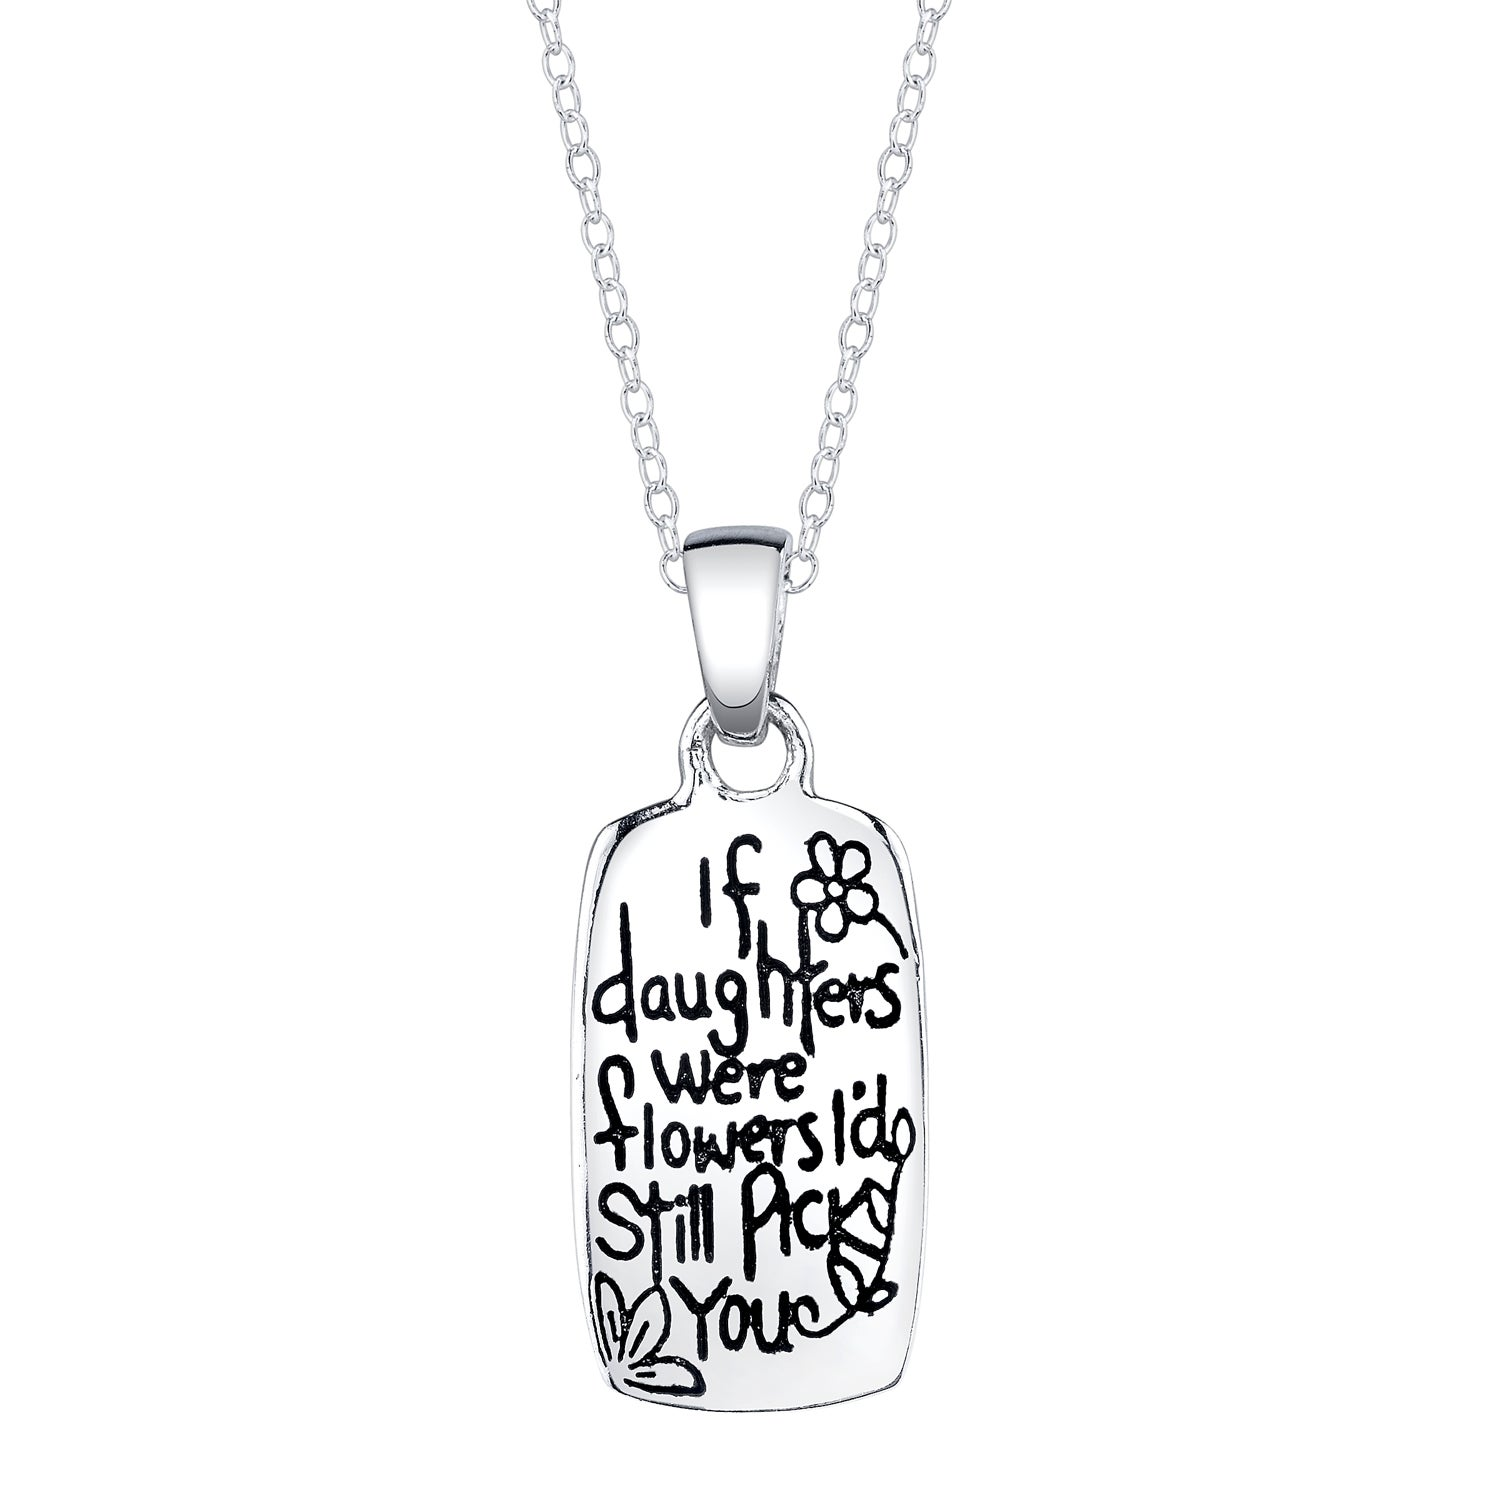 Sterling Silver 'If Daughters were Flowers I'd Still Pick You' Reversible Heart Necklace